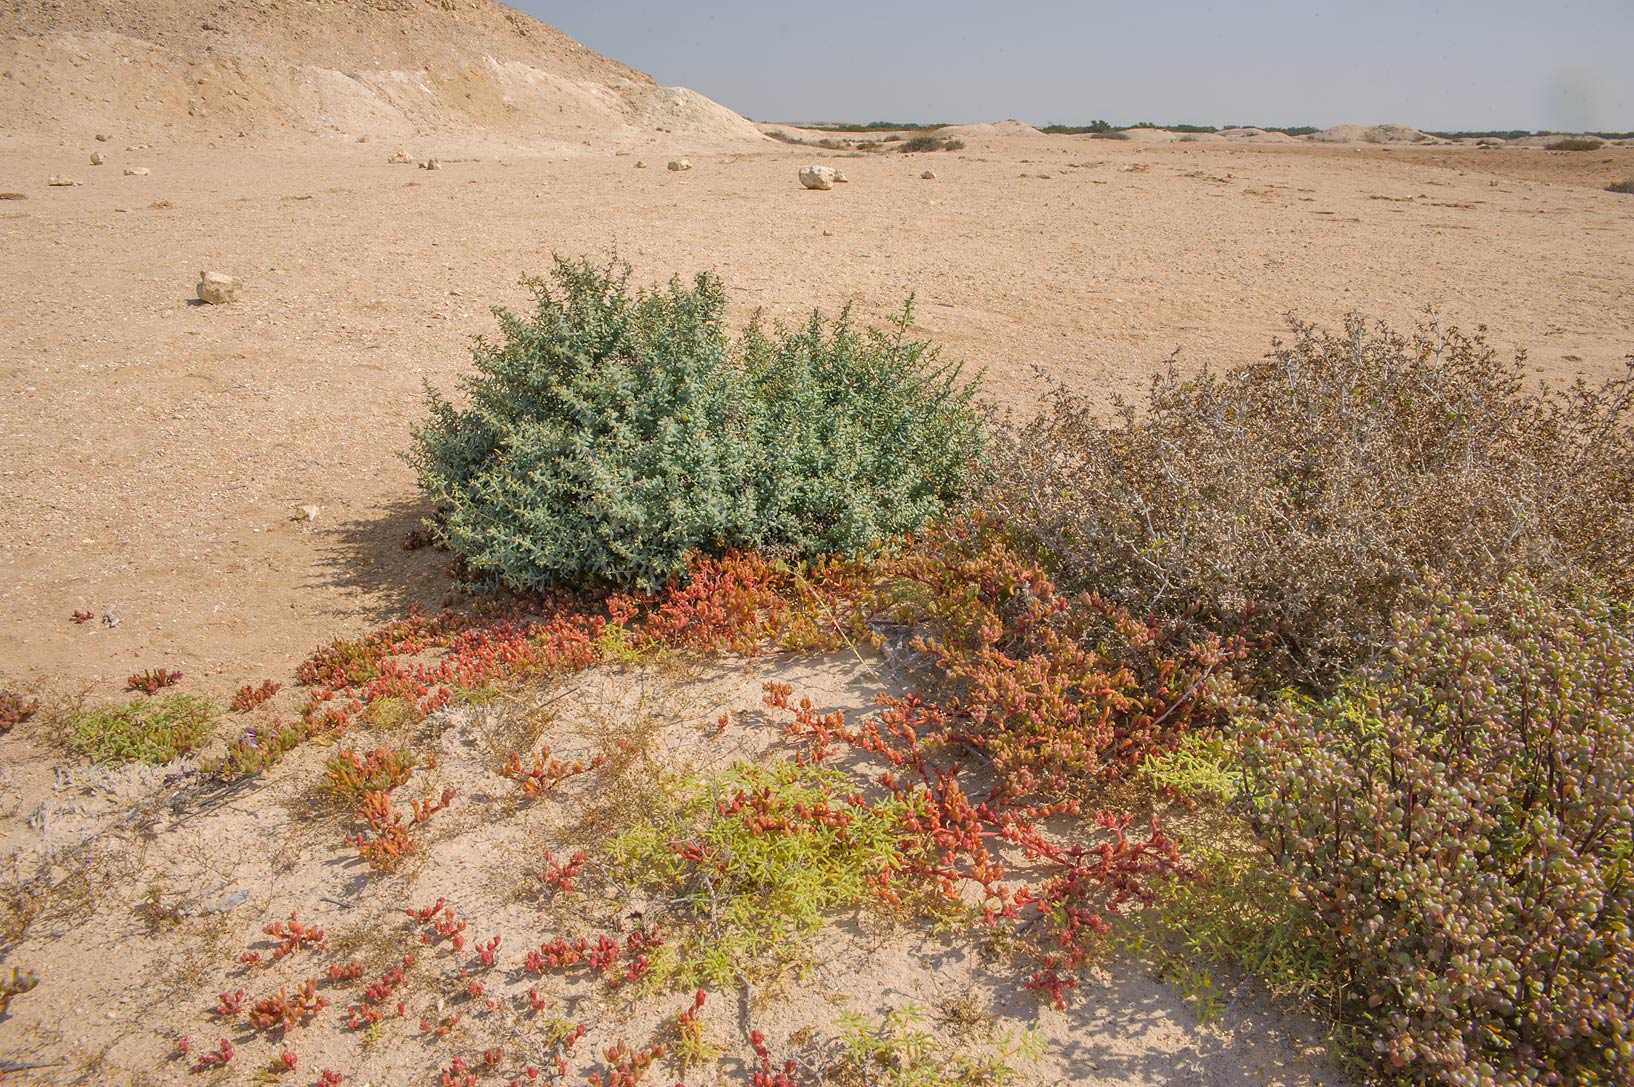 Multicolored salt tolerant plants on Purple Island (Jazirat Bin Ghanim). Al Khor, Qatar